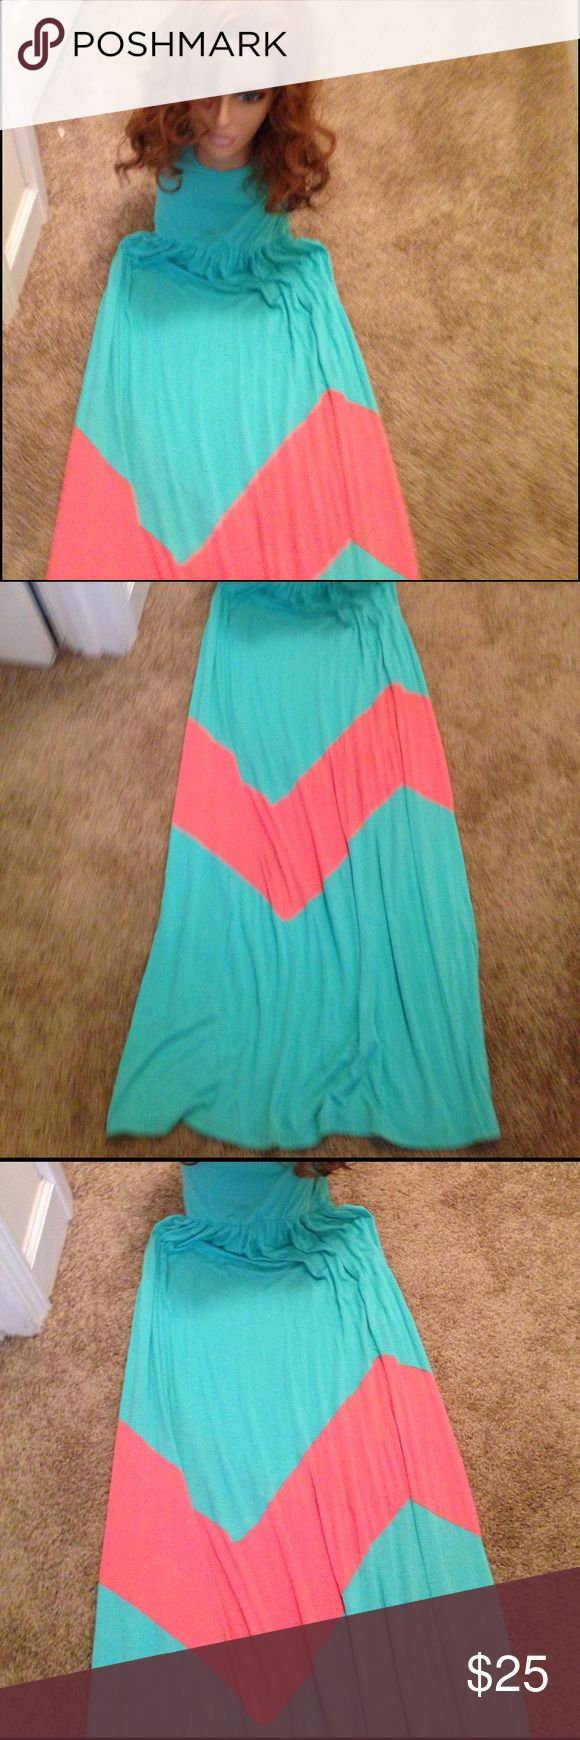 ❤️❤️❤️ Isn't this cute ❤️❤️❤️ Maxi 👗 dress in turquoise and peach 🍑 J Mode Dresses Maxi